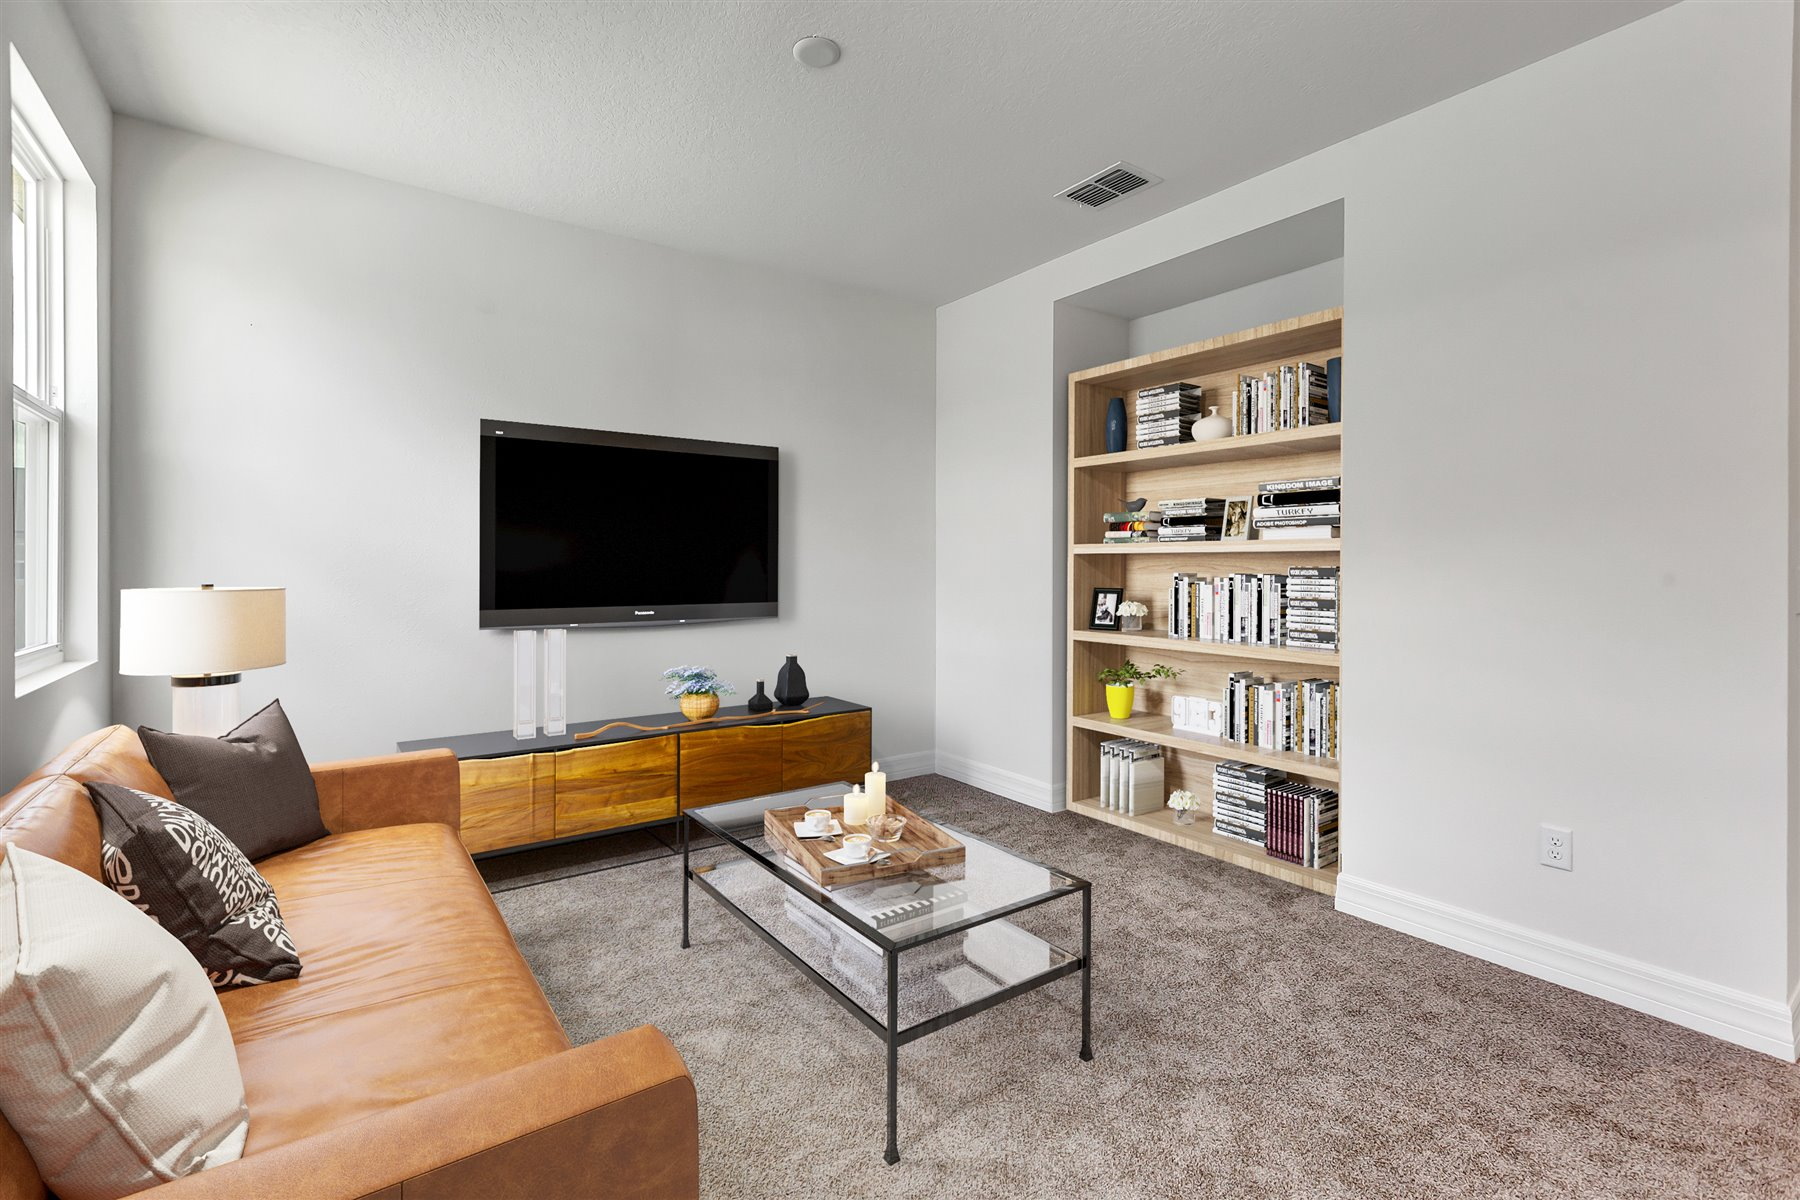 Newport Plan Loft at Meridian Parks in Orlando Florida by Mattamy Homes